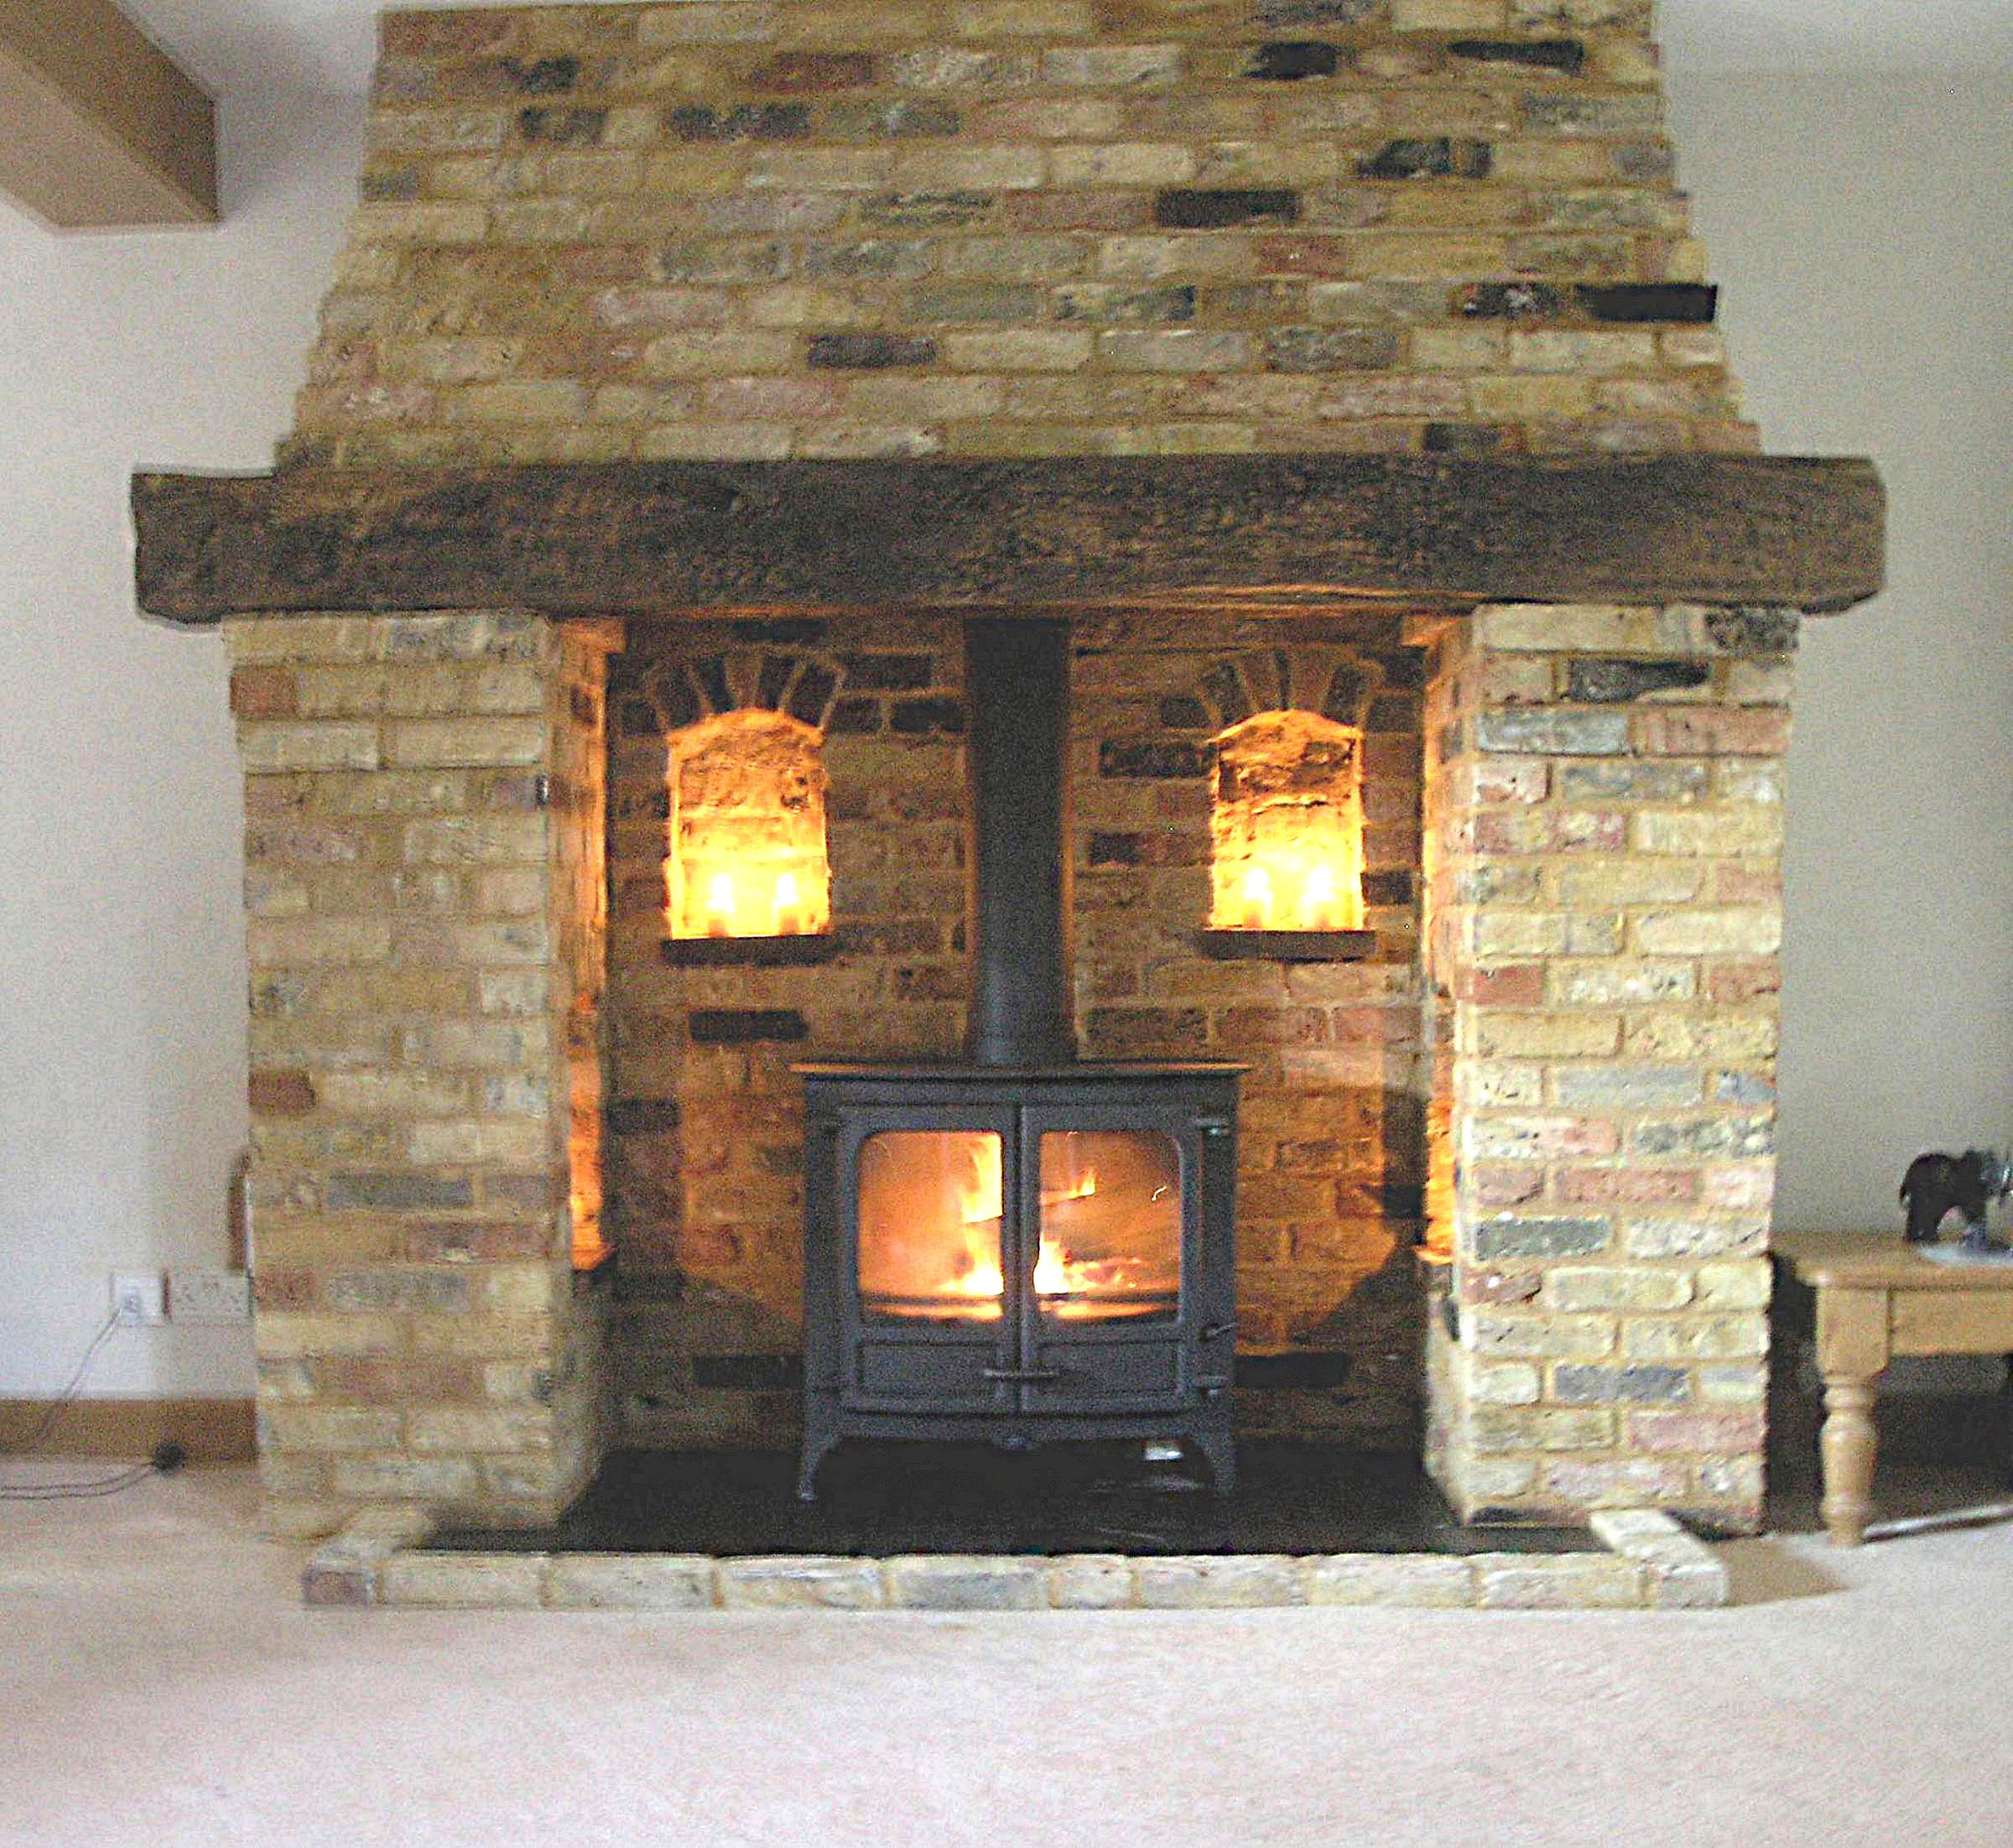 bespoke reclaimed brick and oak inglenook fireplace with a